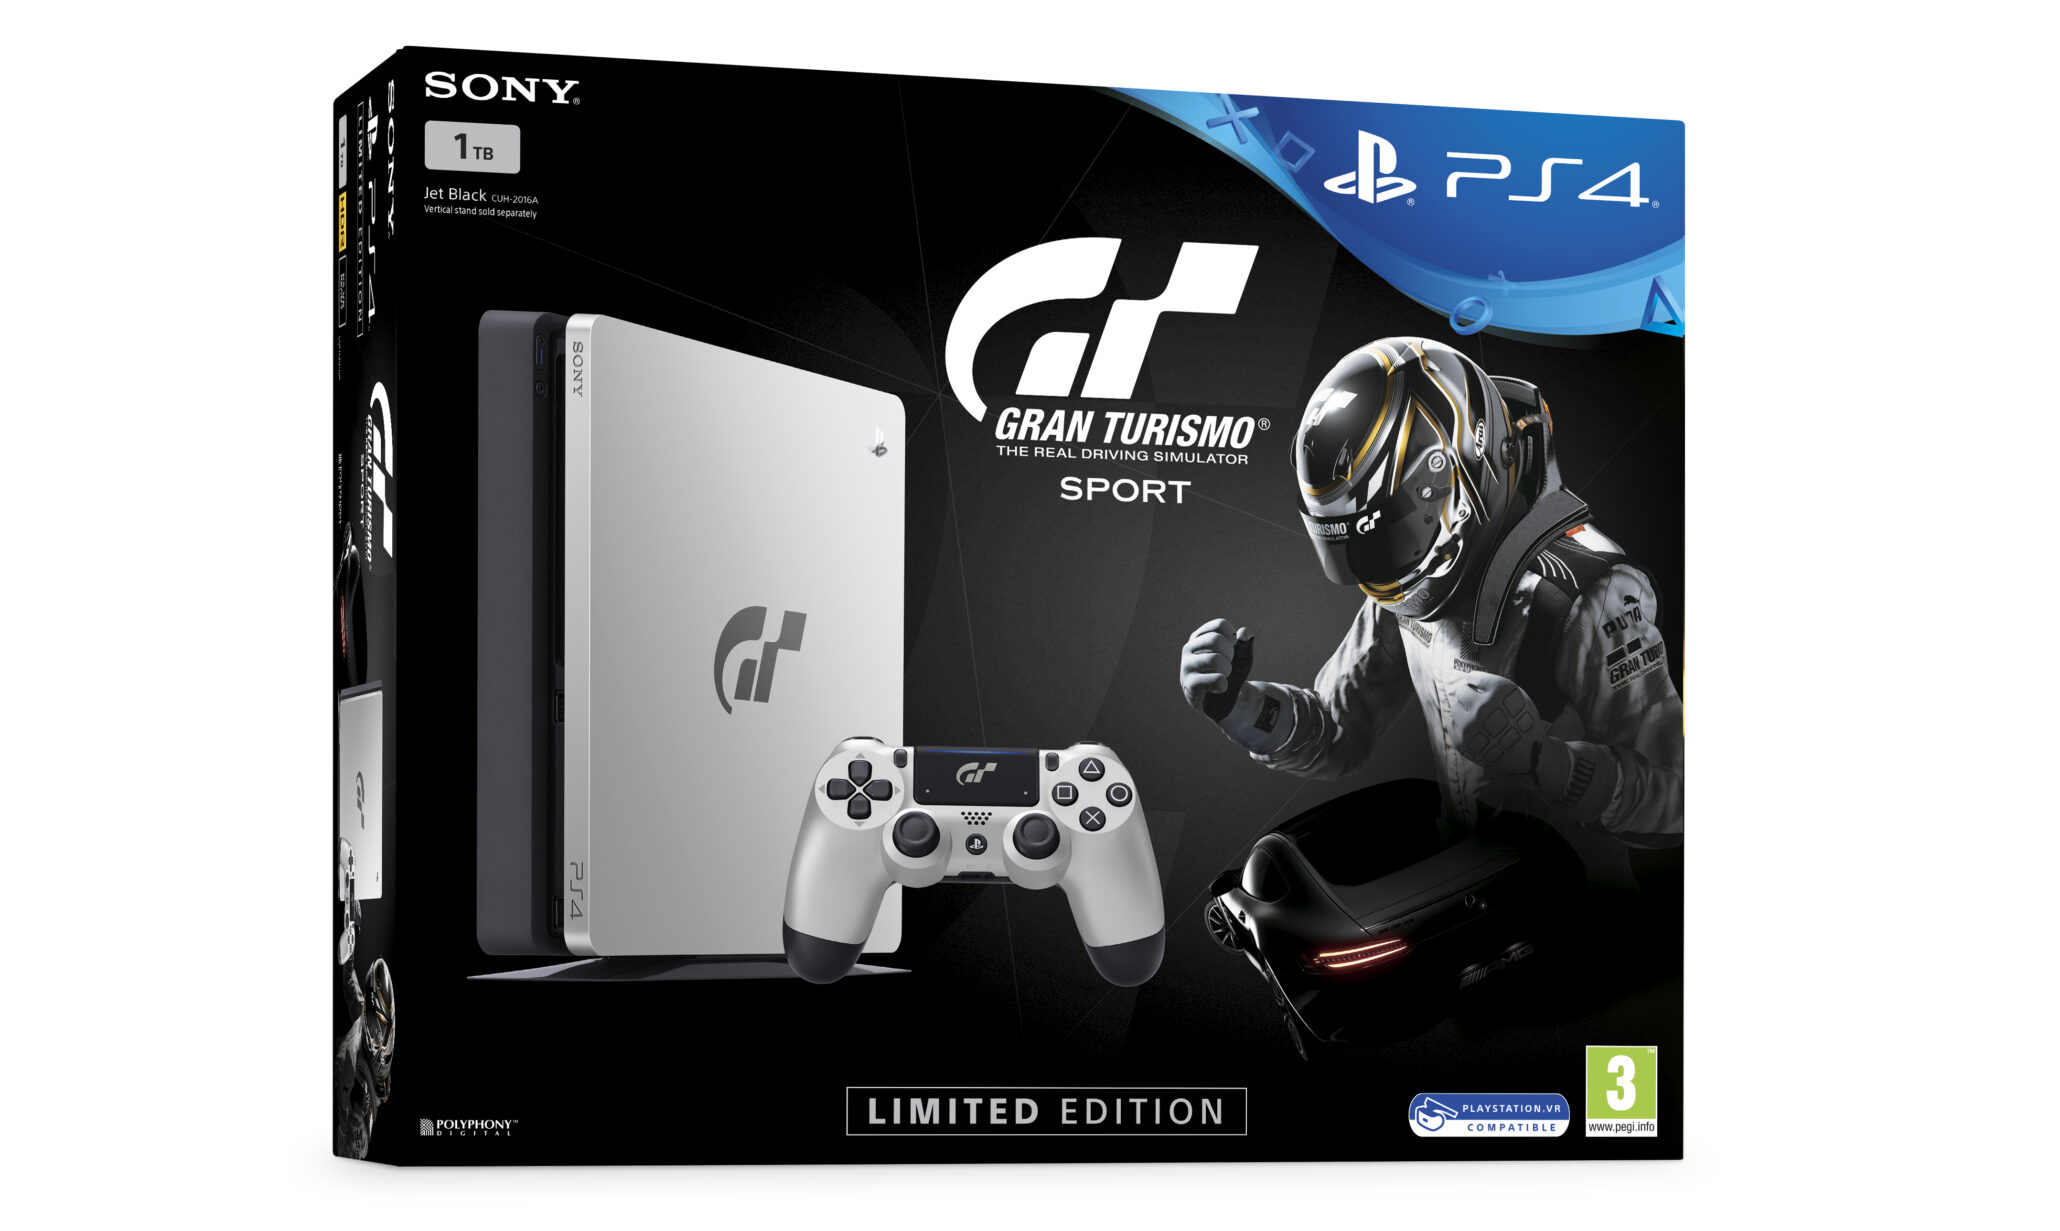 limited edition gran turismo sport playstation 4 slim 1tb. Black Bedroom Furniture Sets. Home Design Ideas